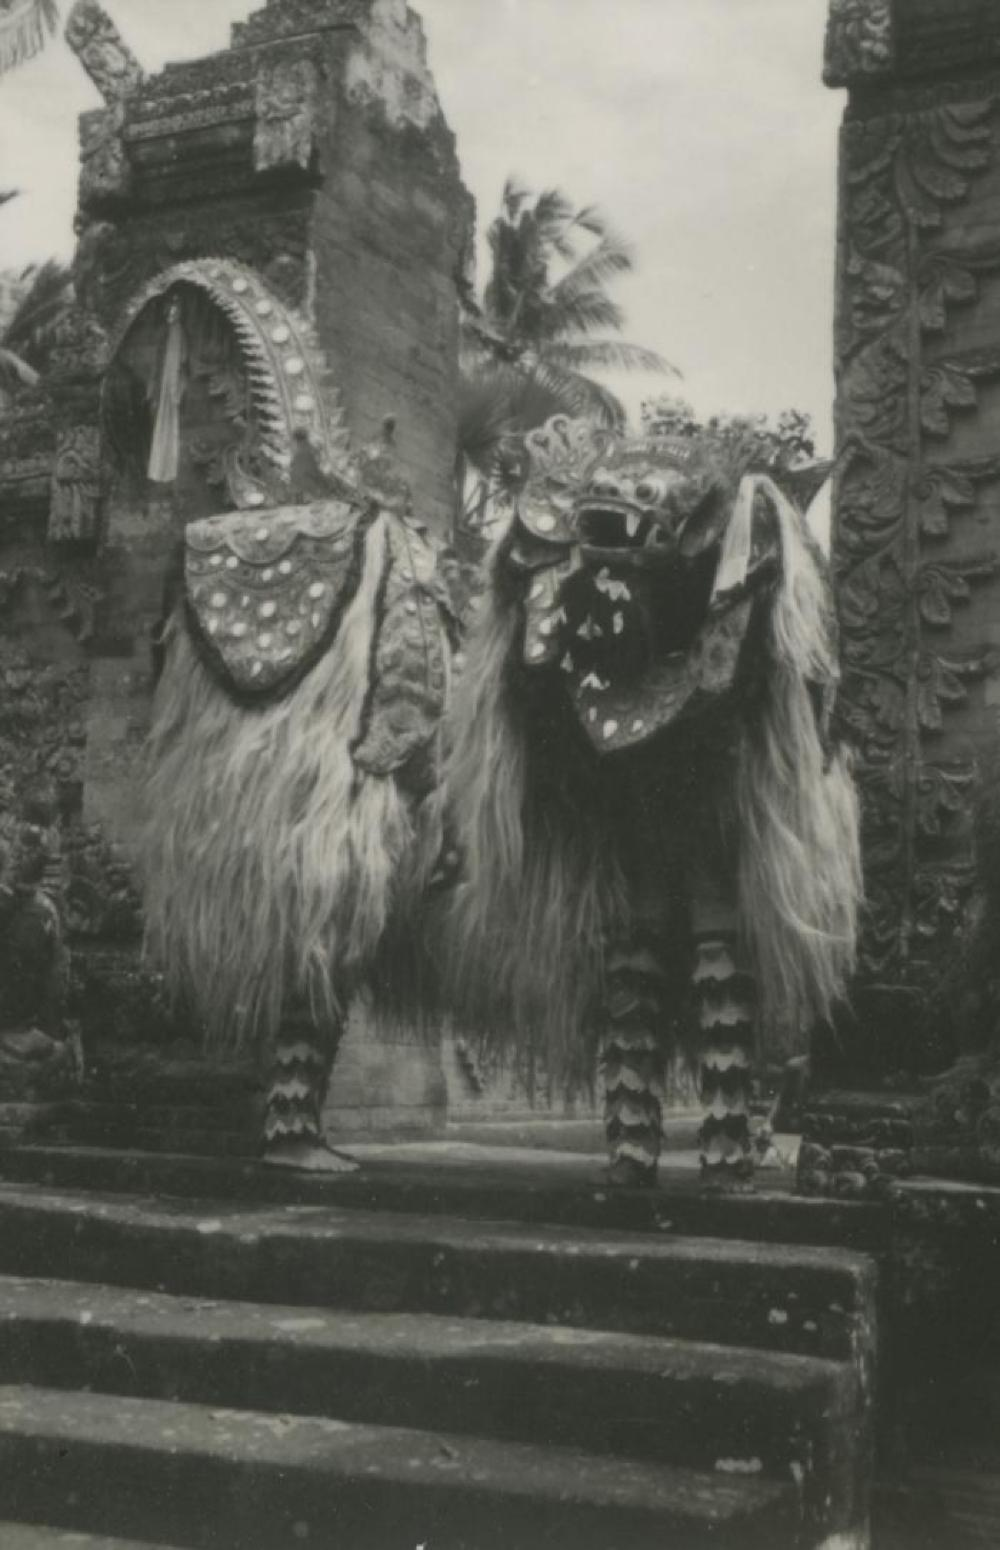 Bollingen Travels: Barong performers with Barong Ket mask at split gate in Bali, Indonesia